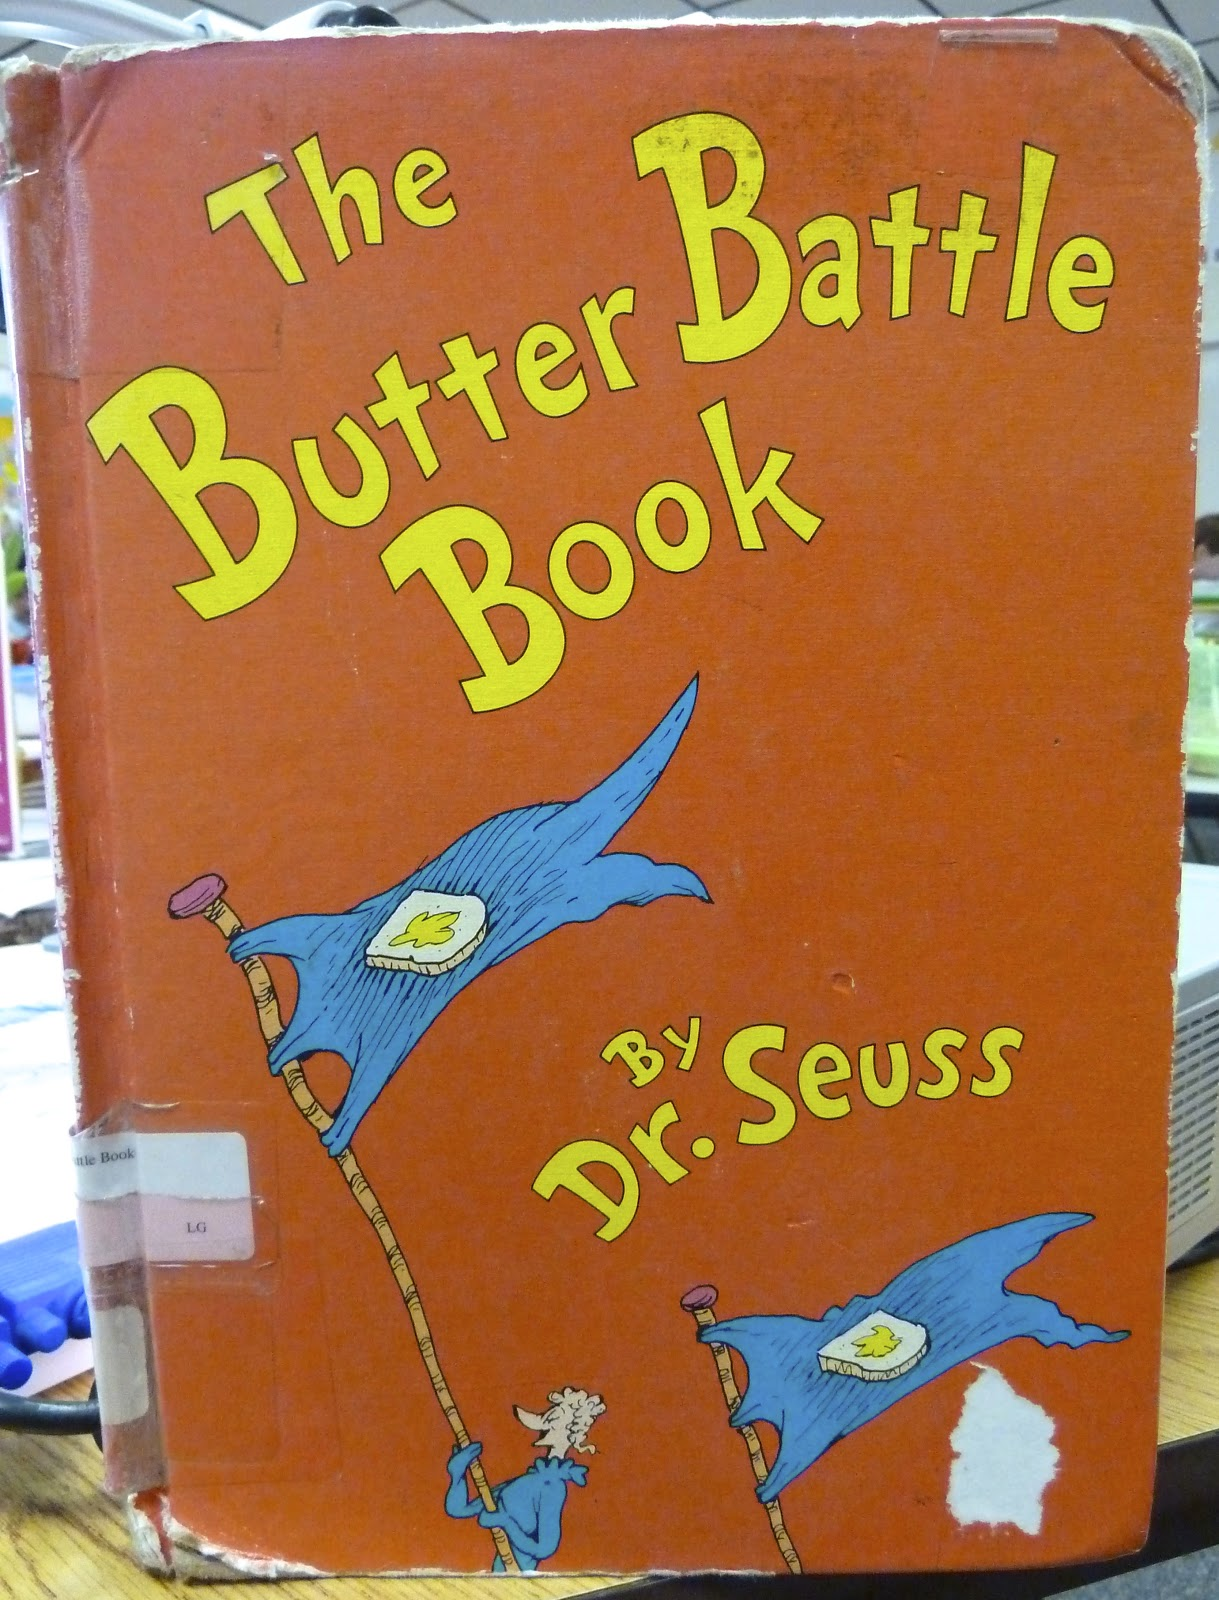 dr seuss the butter battle book and The butter battle book discussion guide dr seuss injects humor into this serious tale of conflict, offering a great opportunity for a student discussion on valuing diversity.